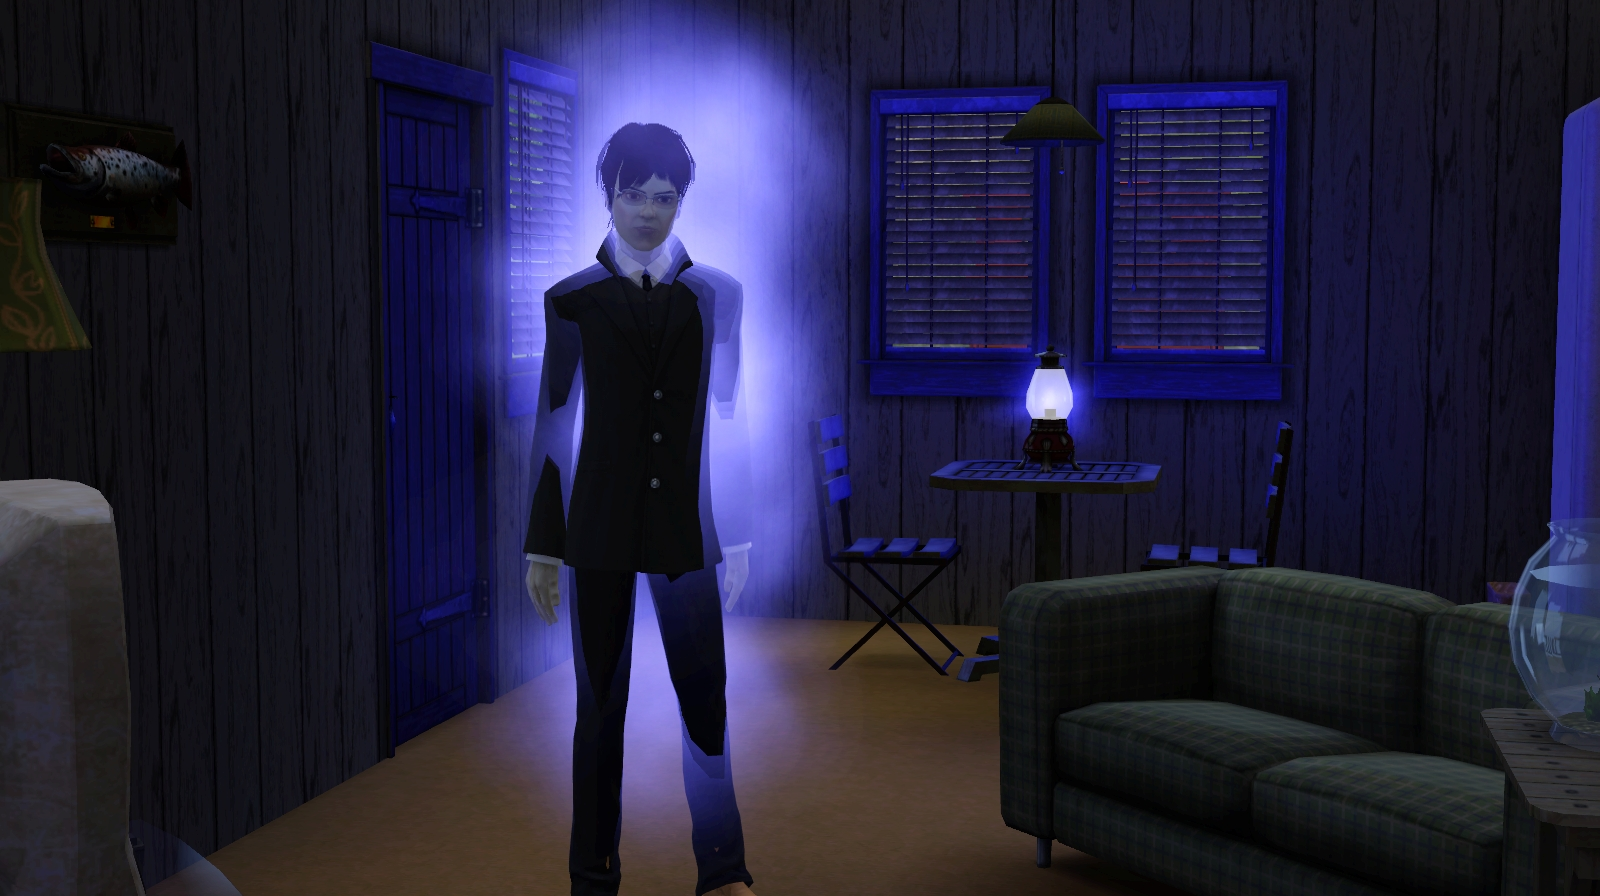 Spectrum Mood Lamp | The Sims Wiki | FANDOM powered by Wikia